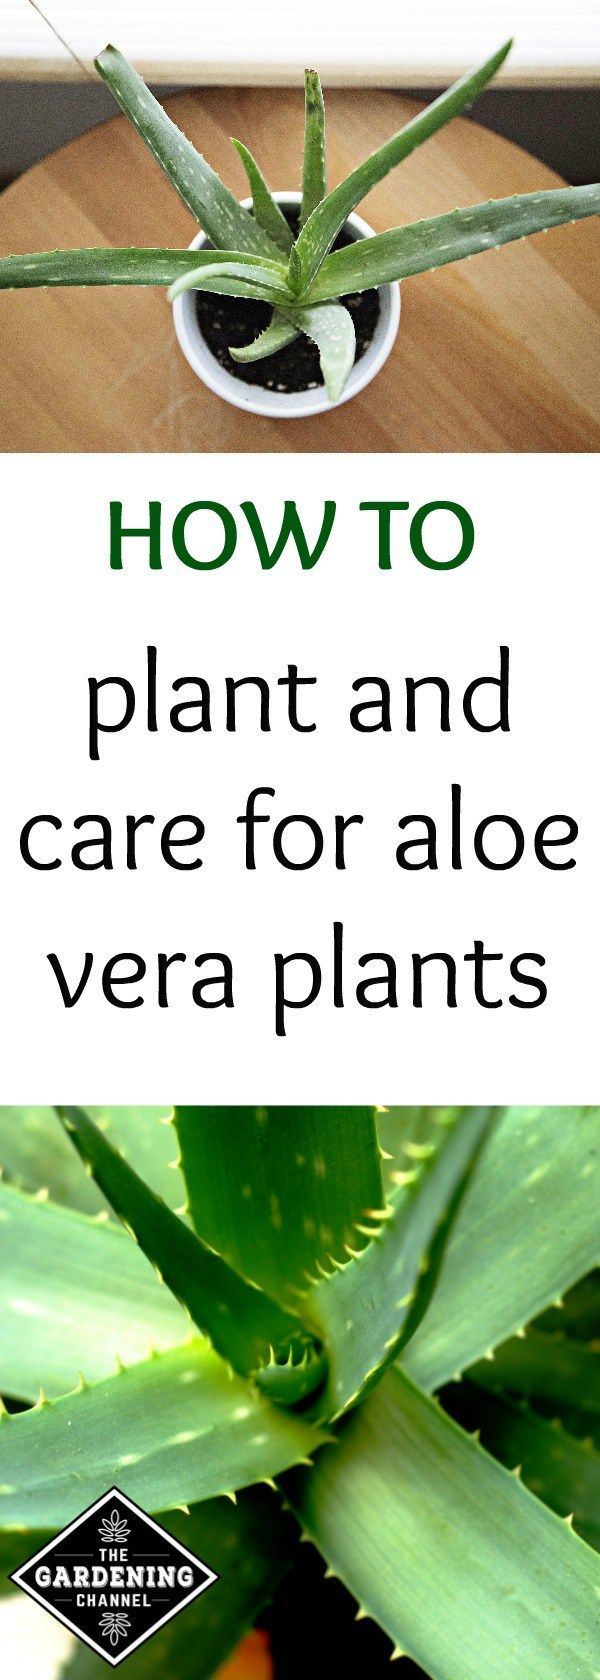 Best 25 aloe vera plant indoor ideas on pinterest aloe vera care aloe plant care and growing - Aloe vera plant care tips beginners guide ...